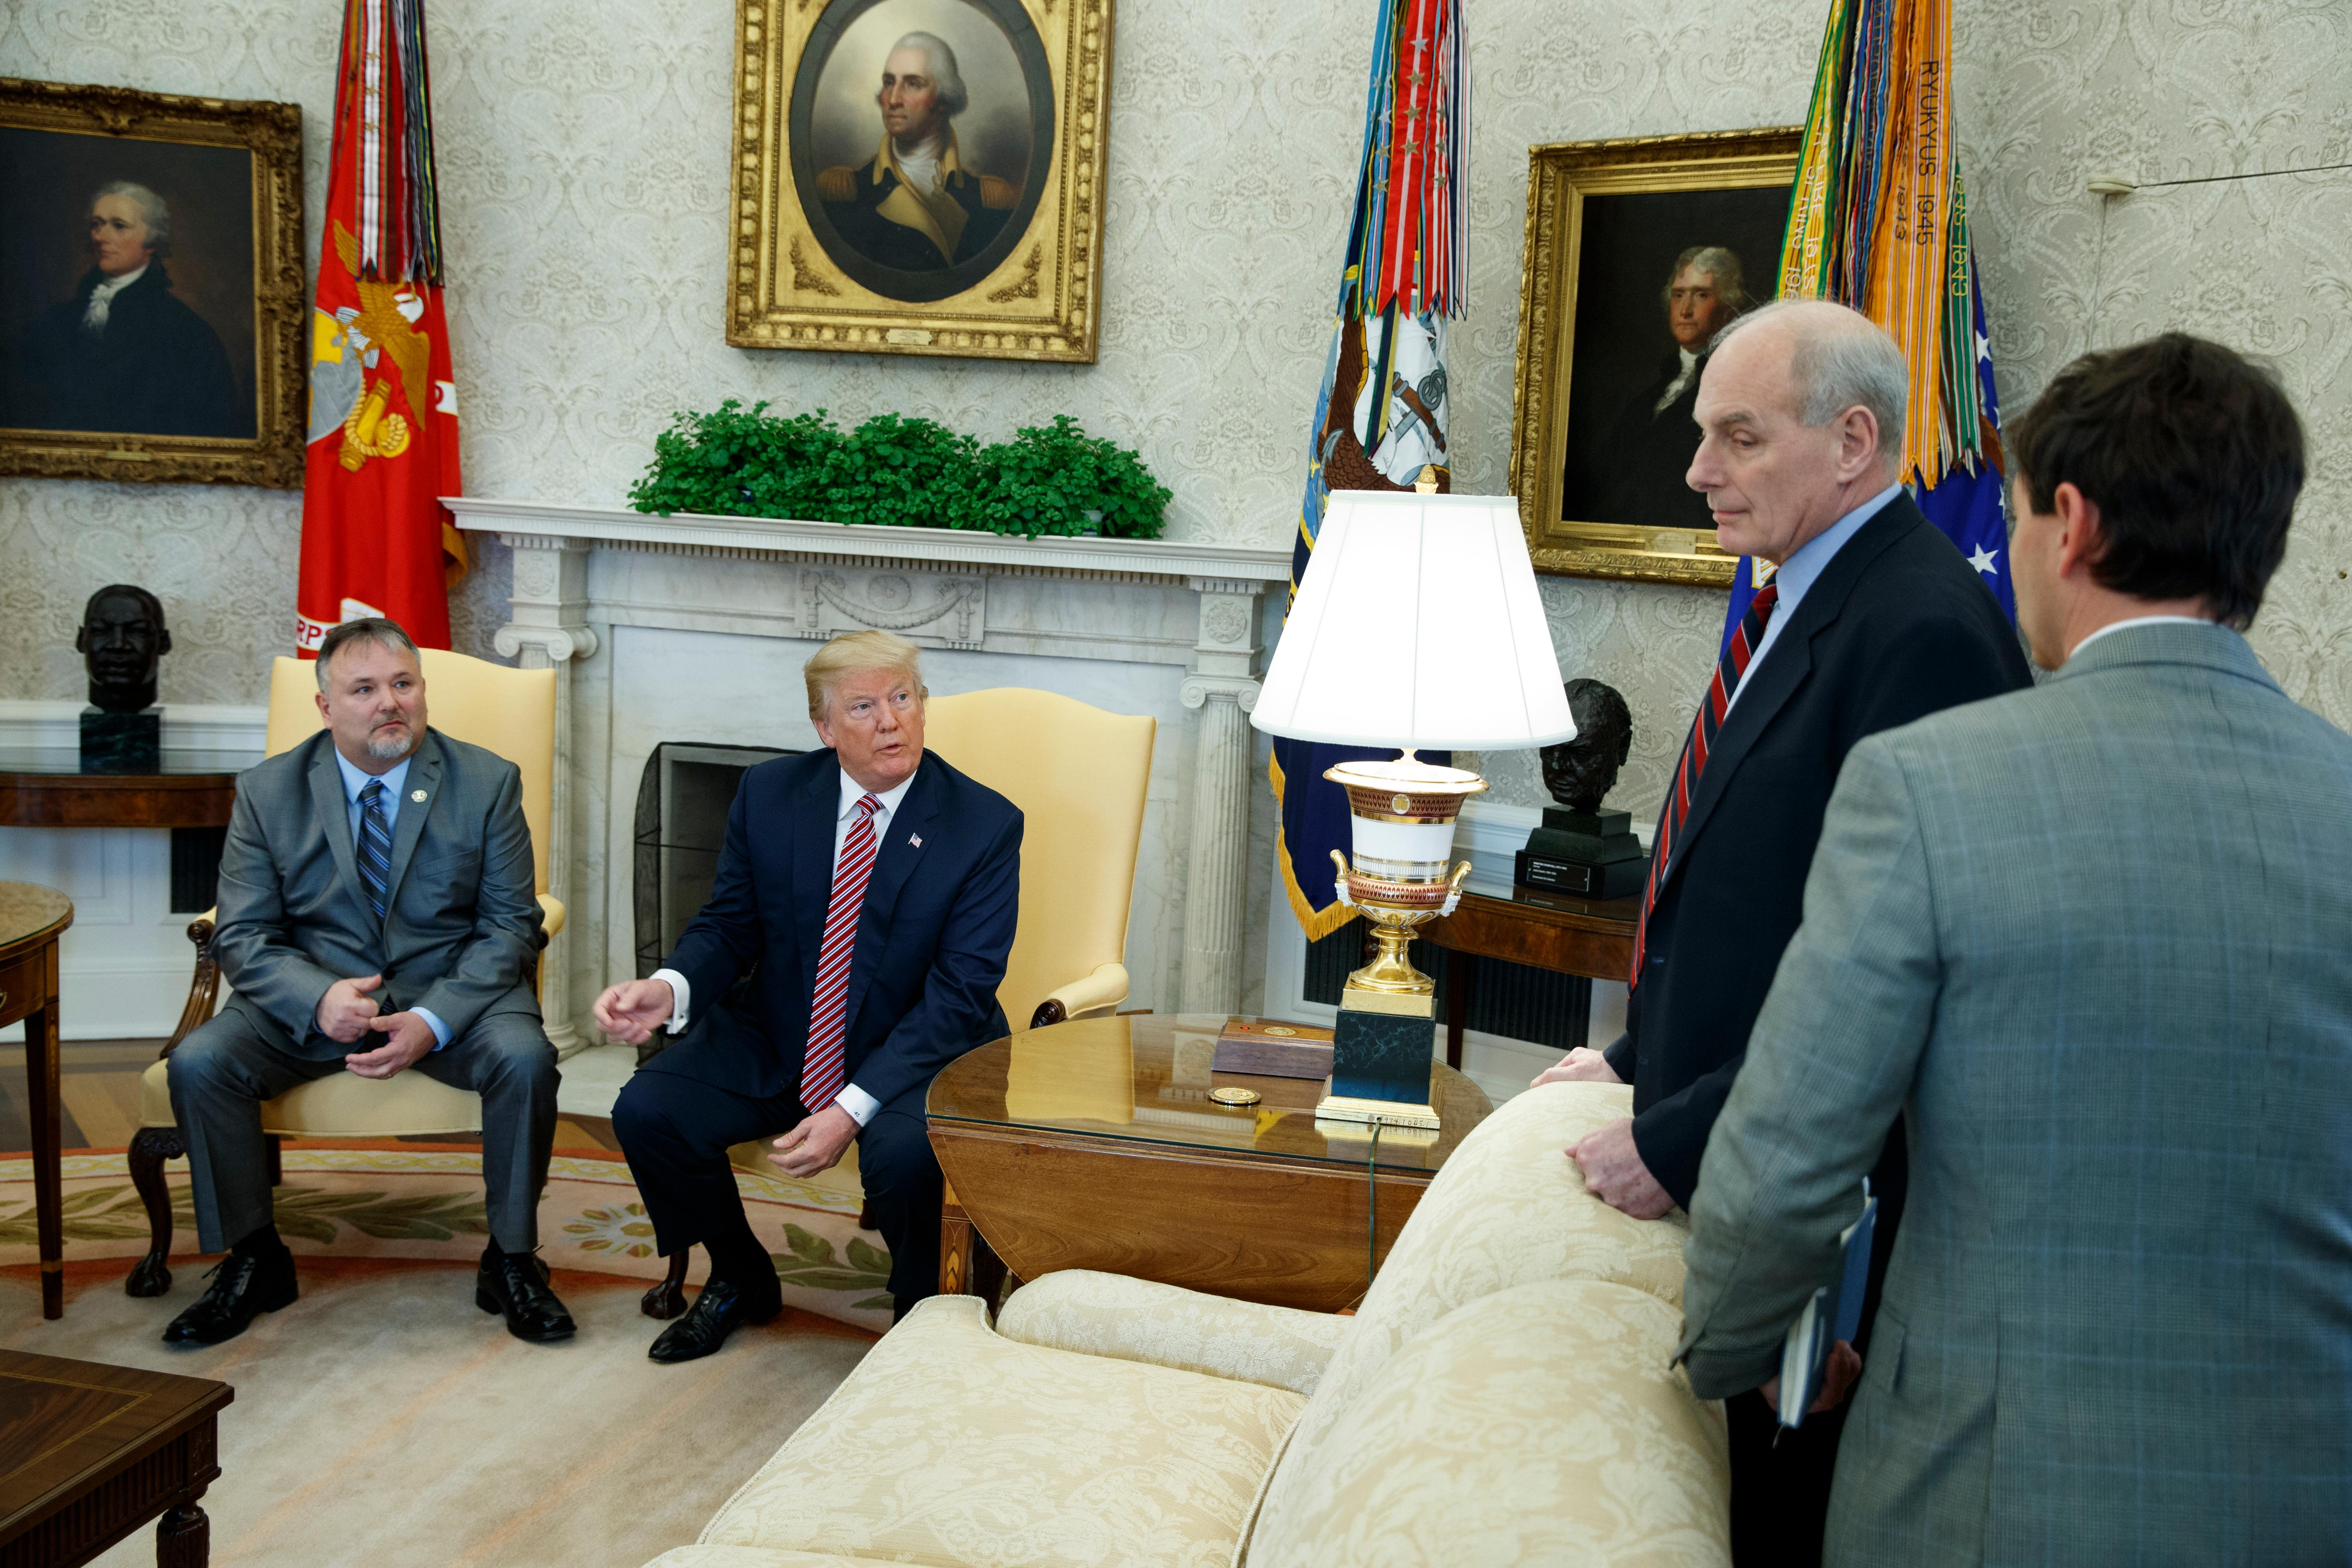 President Donald Trump speaks with White House Chief of Staff John Kelly, second from right, and White House deputy press secretary Hogan Gidley, right, after meeting with Don Bouvet, left, in the Oval Office of the White House, Friday, Feb. 9, 2018, in Washington. (AP Photo/Evan Vucci)